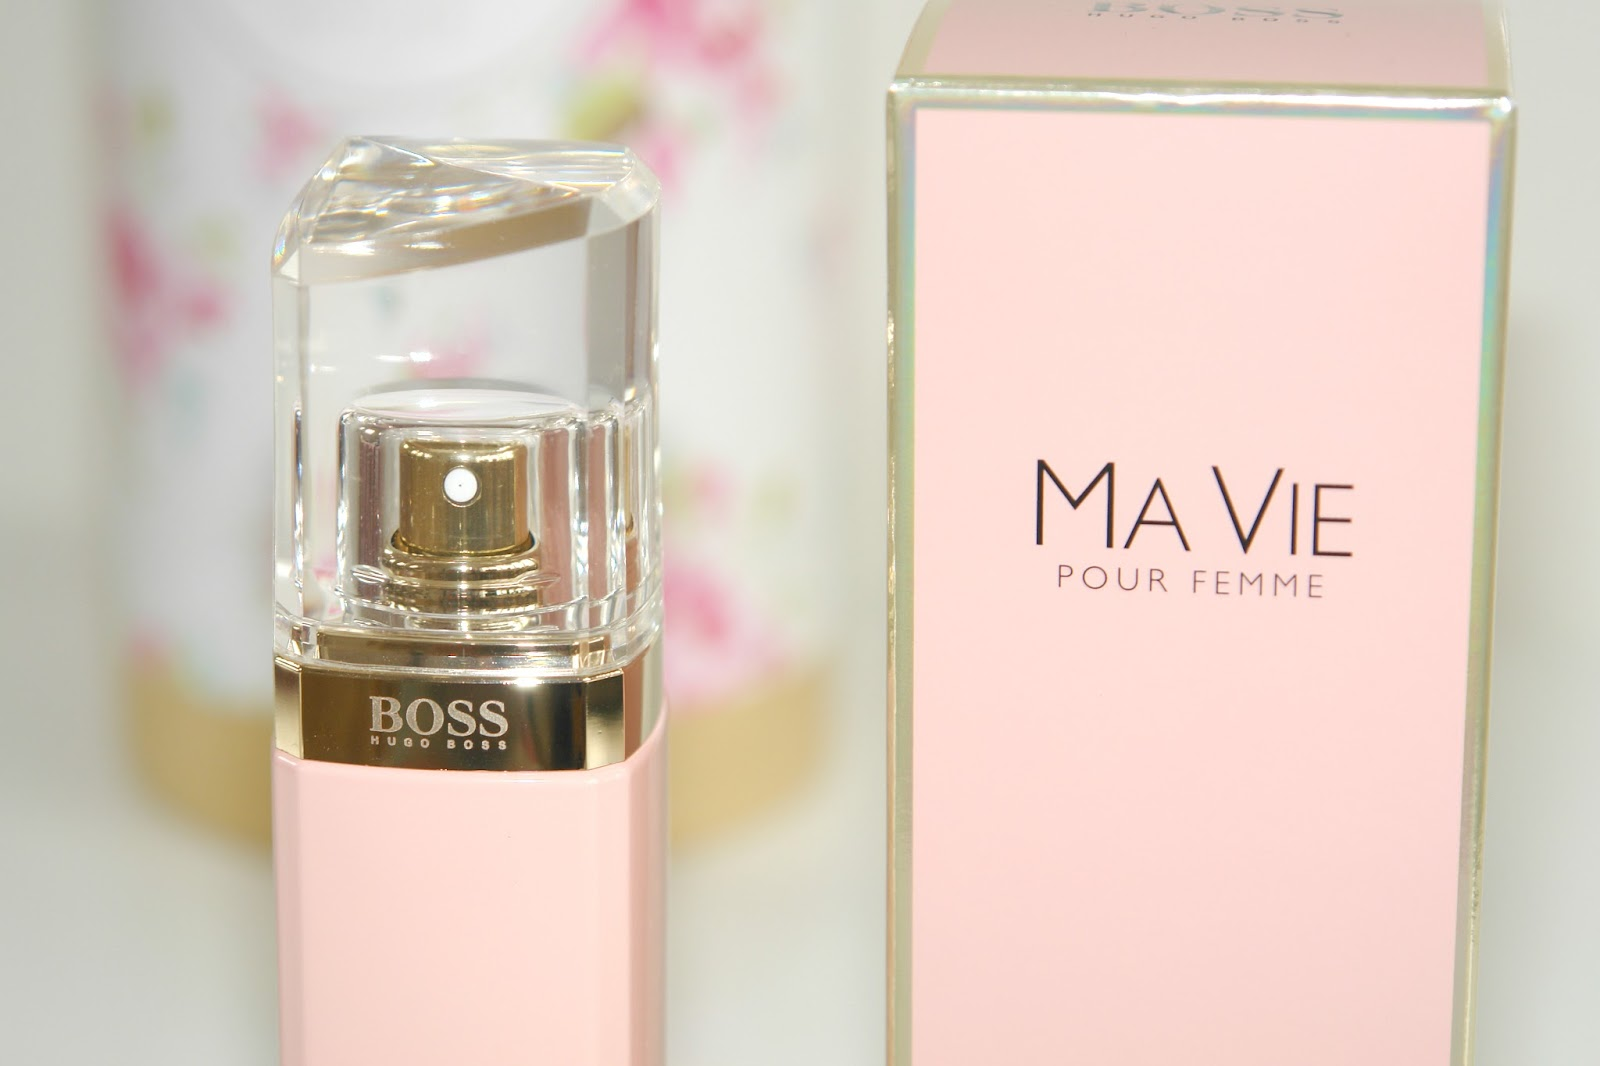 Hugo Boss Ma Vie Pour Femme Perfume review, perfume, beauty, review,